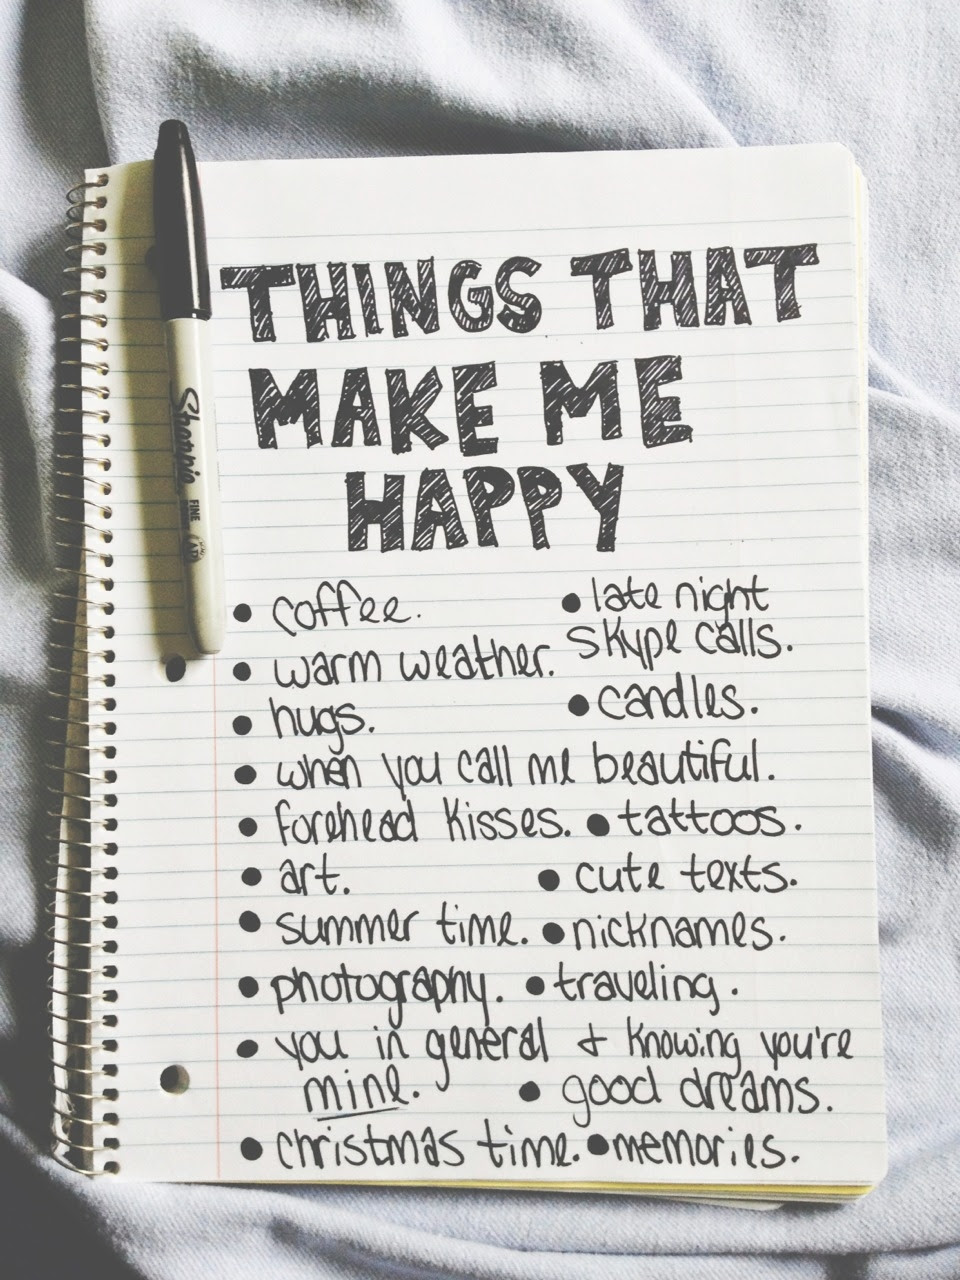 Things That Make Me Happy Pictures Photos And Images For Facebook